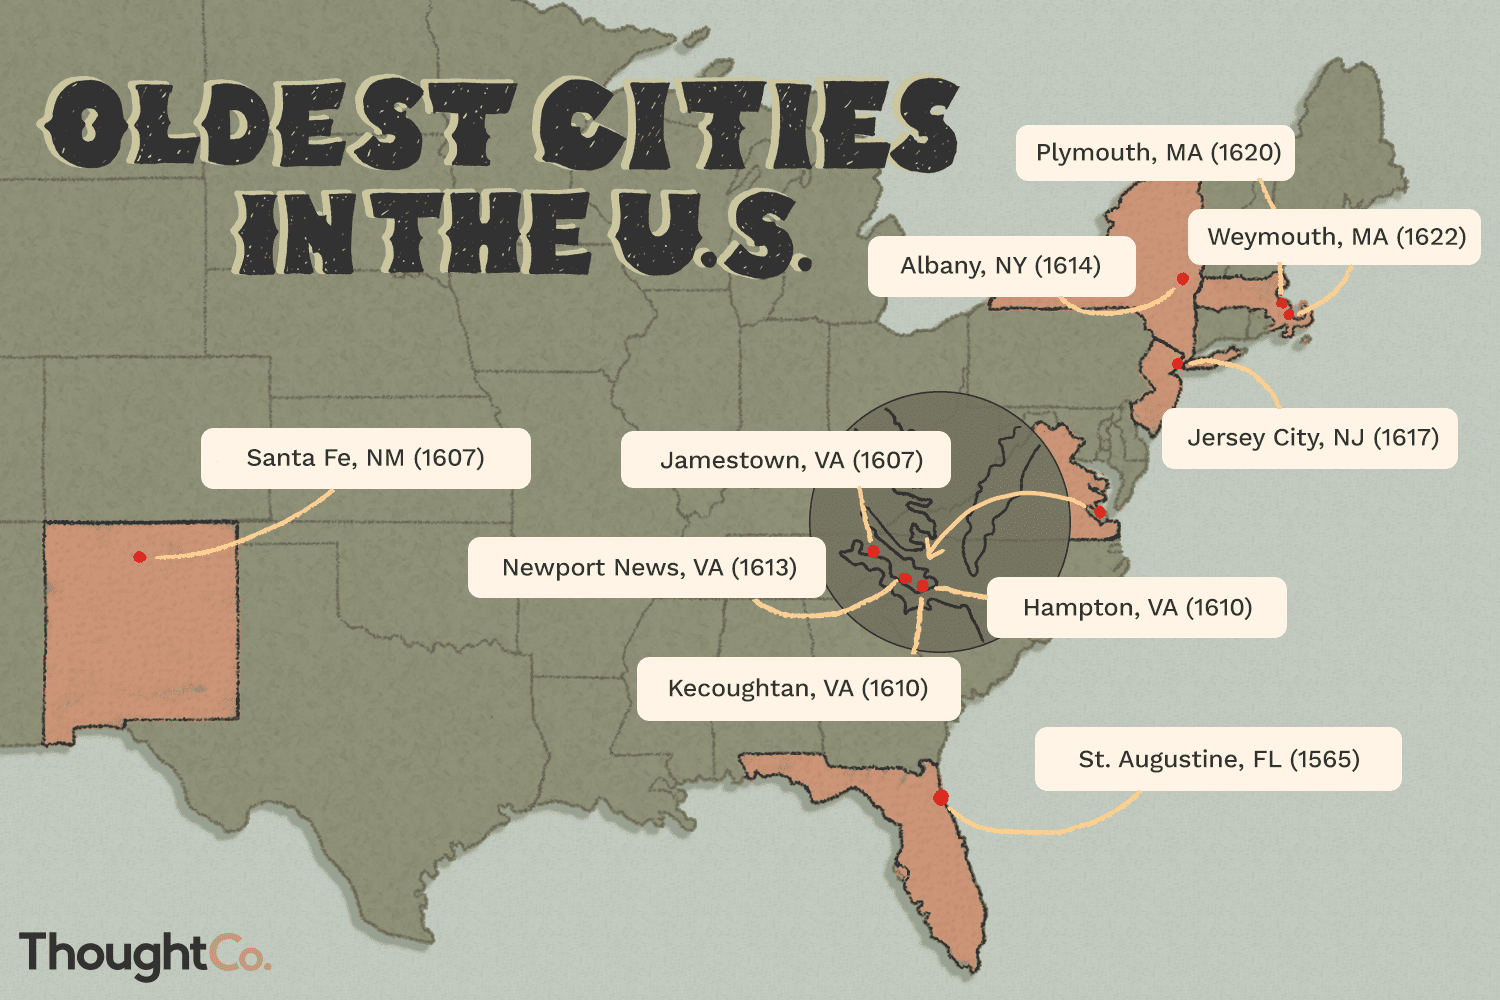 10 Oldest Cities in the United States on eastern pa map cities, indiana map cities, alabama map cities, missouri map cities, pacific map cities, northwest us map cities, mountain west map cities, ohio map cities, united states map cities, new mexico map cities, louisiana map cities, pennsylvania map cities, maryland map cities, idaho map cities, oklahoma map cities, columbia map cities, wa map cities, wisconsin map cities, minnesota map cities, virginia map cities,